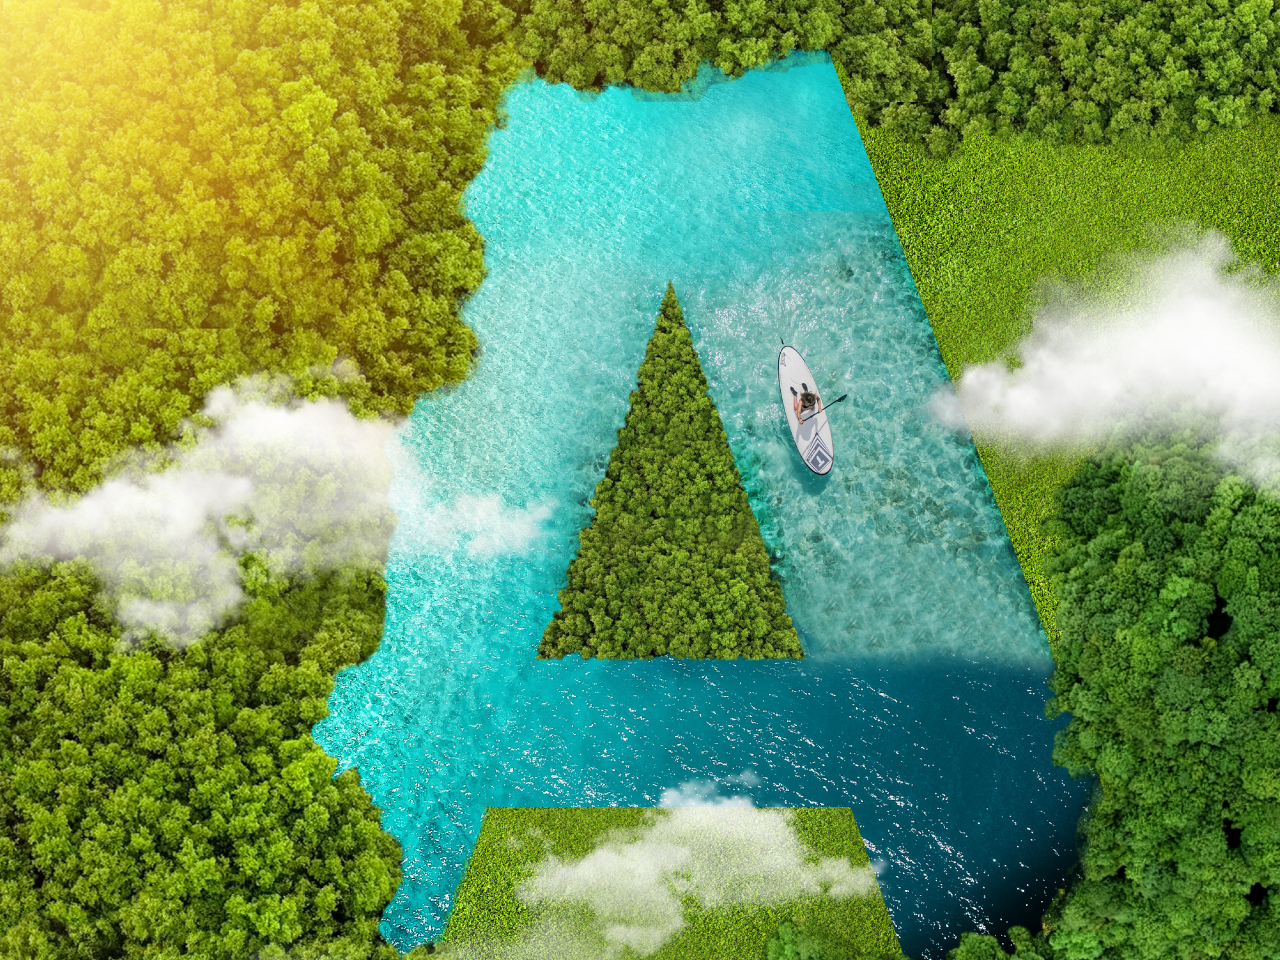 A for Aerial sky leaves plants 36dayoftype 36 days of type